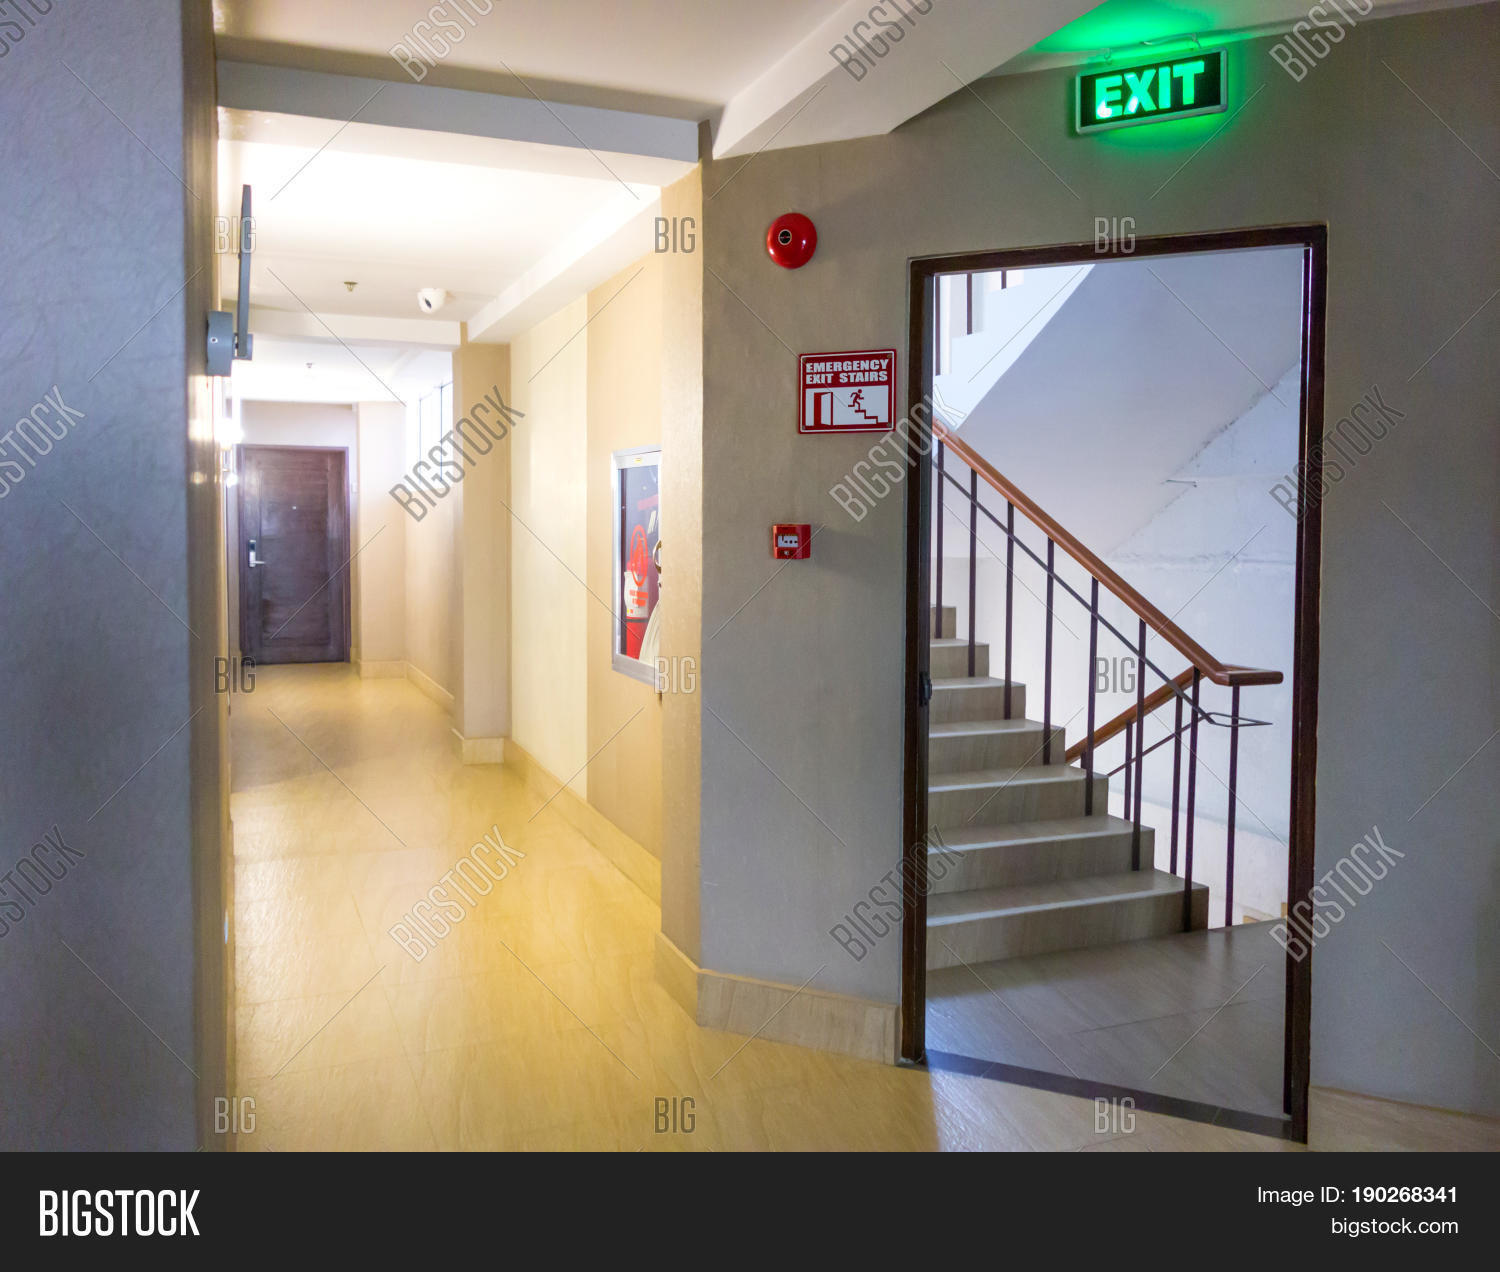 Building Emergency Image Amp Photo Free Trial Bigstock